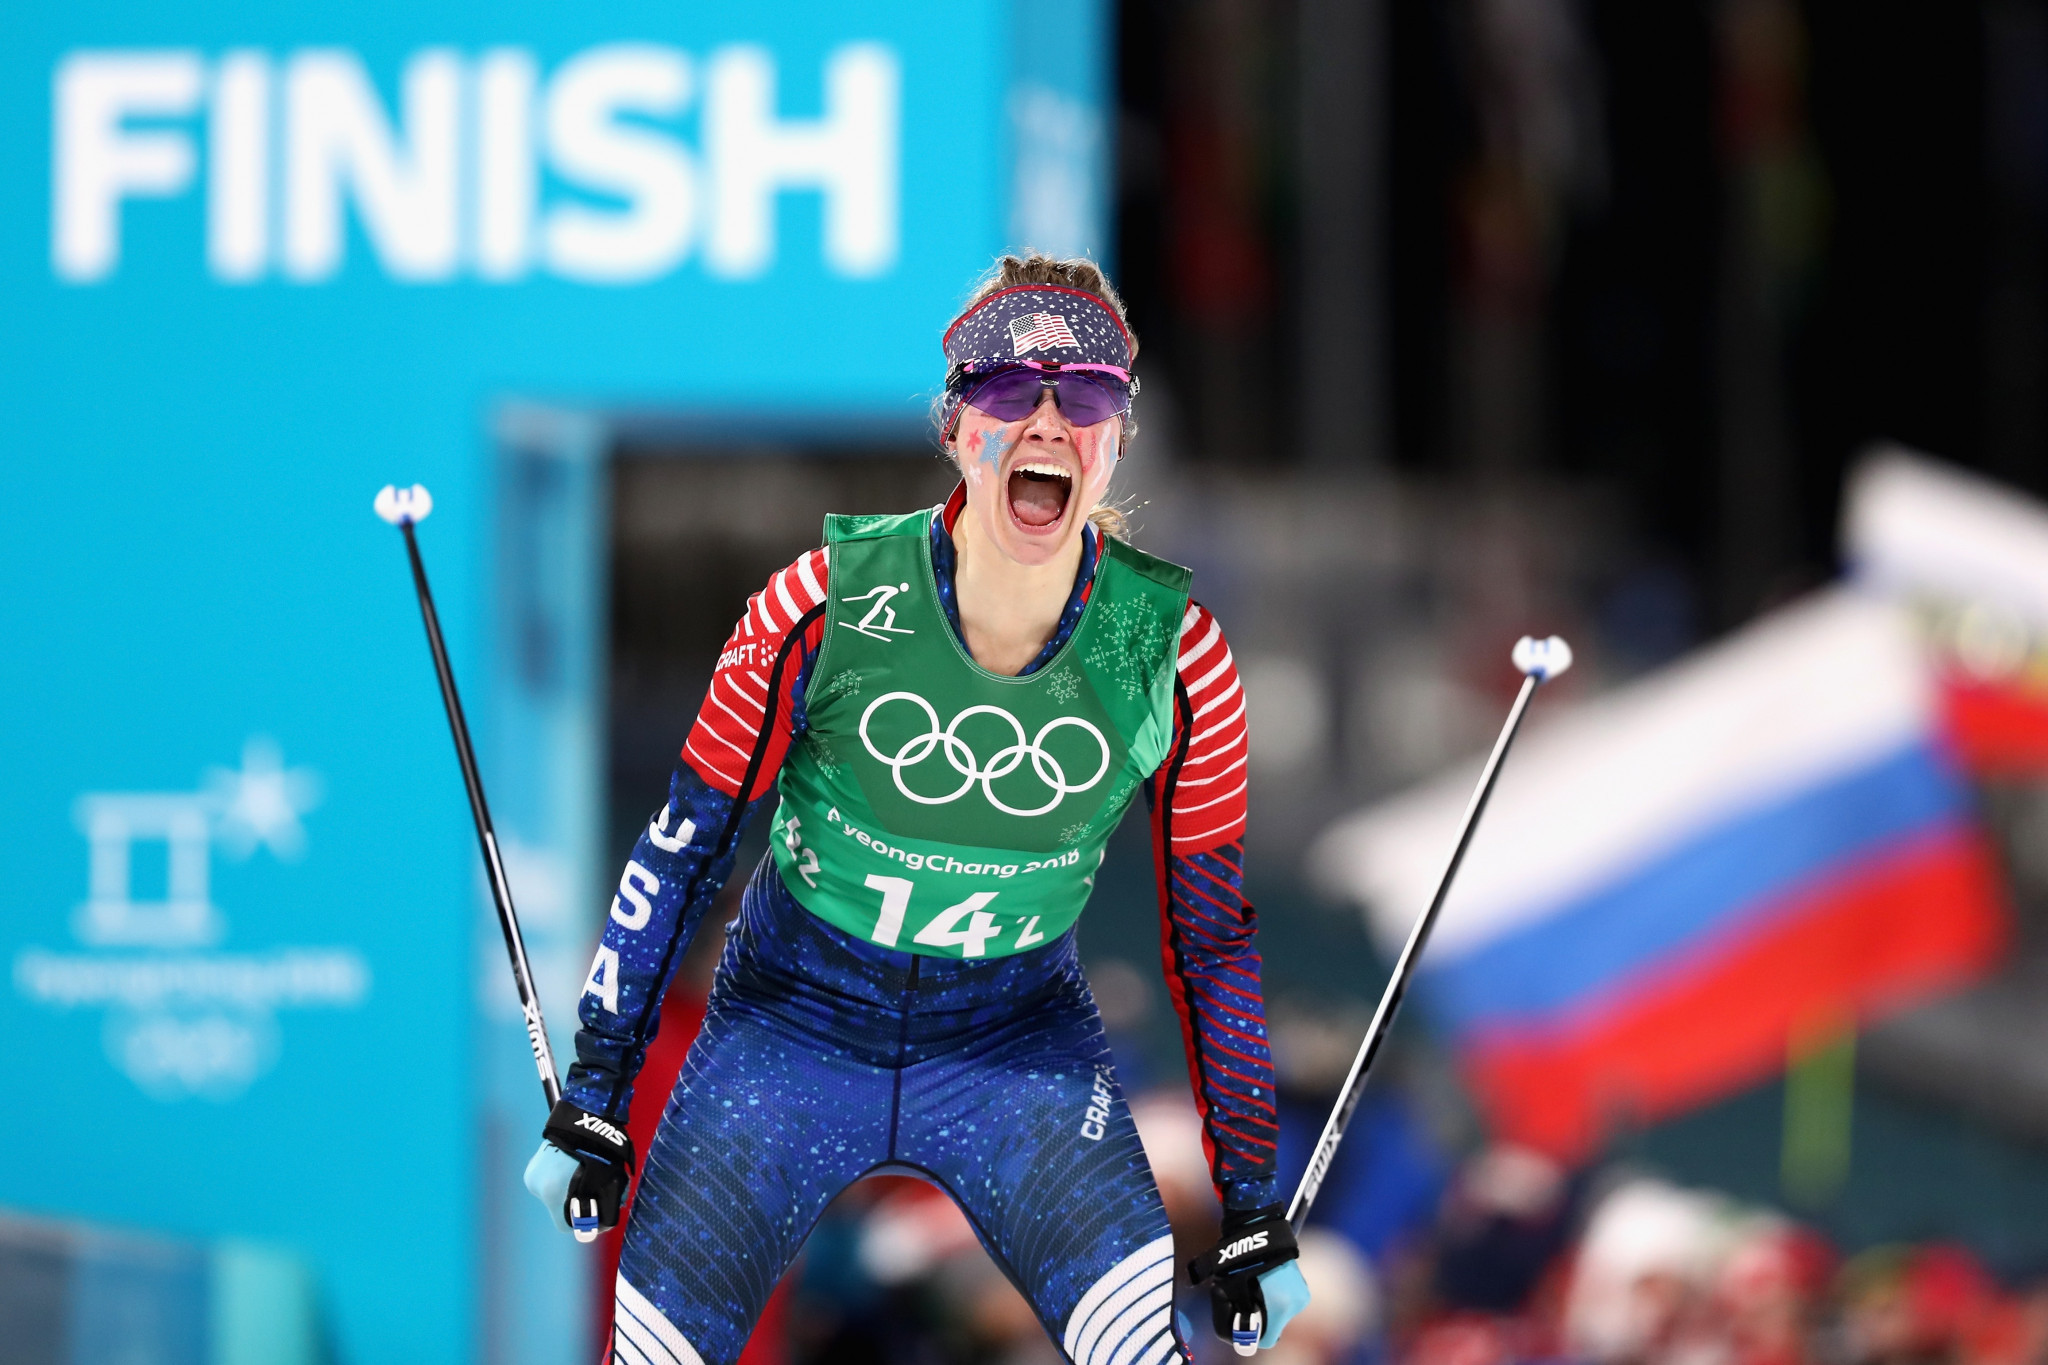 Cross-country skier Jessie Diggins has received the Beck International Award at United States Ski and Snowboard's annual Congress in Park City ©Getty Images